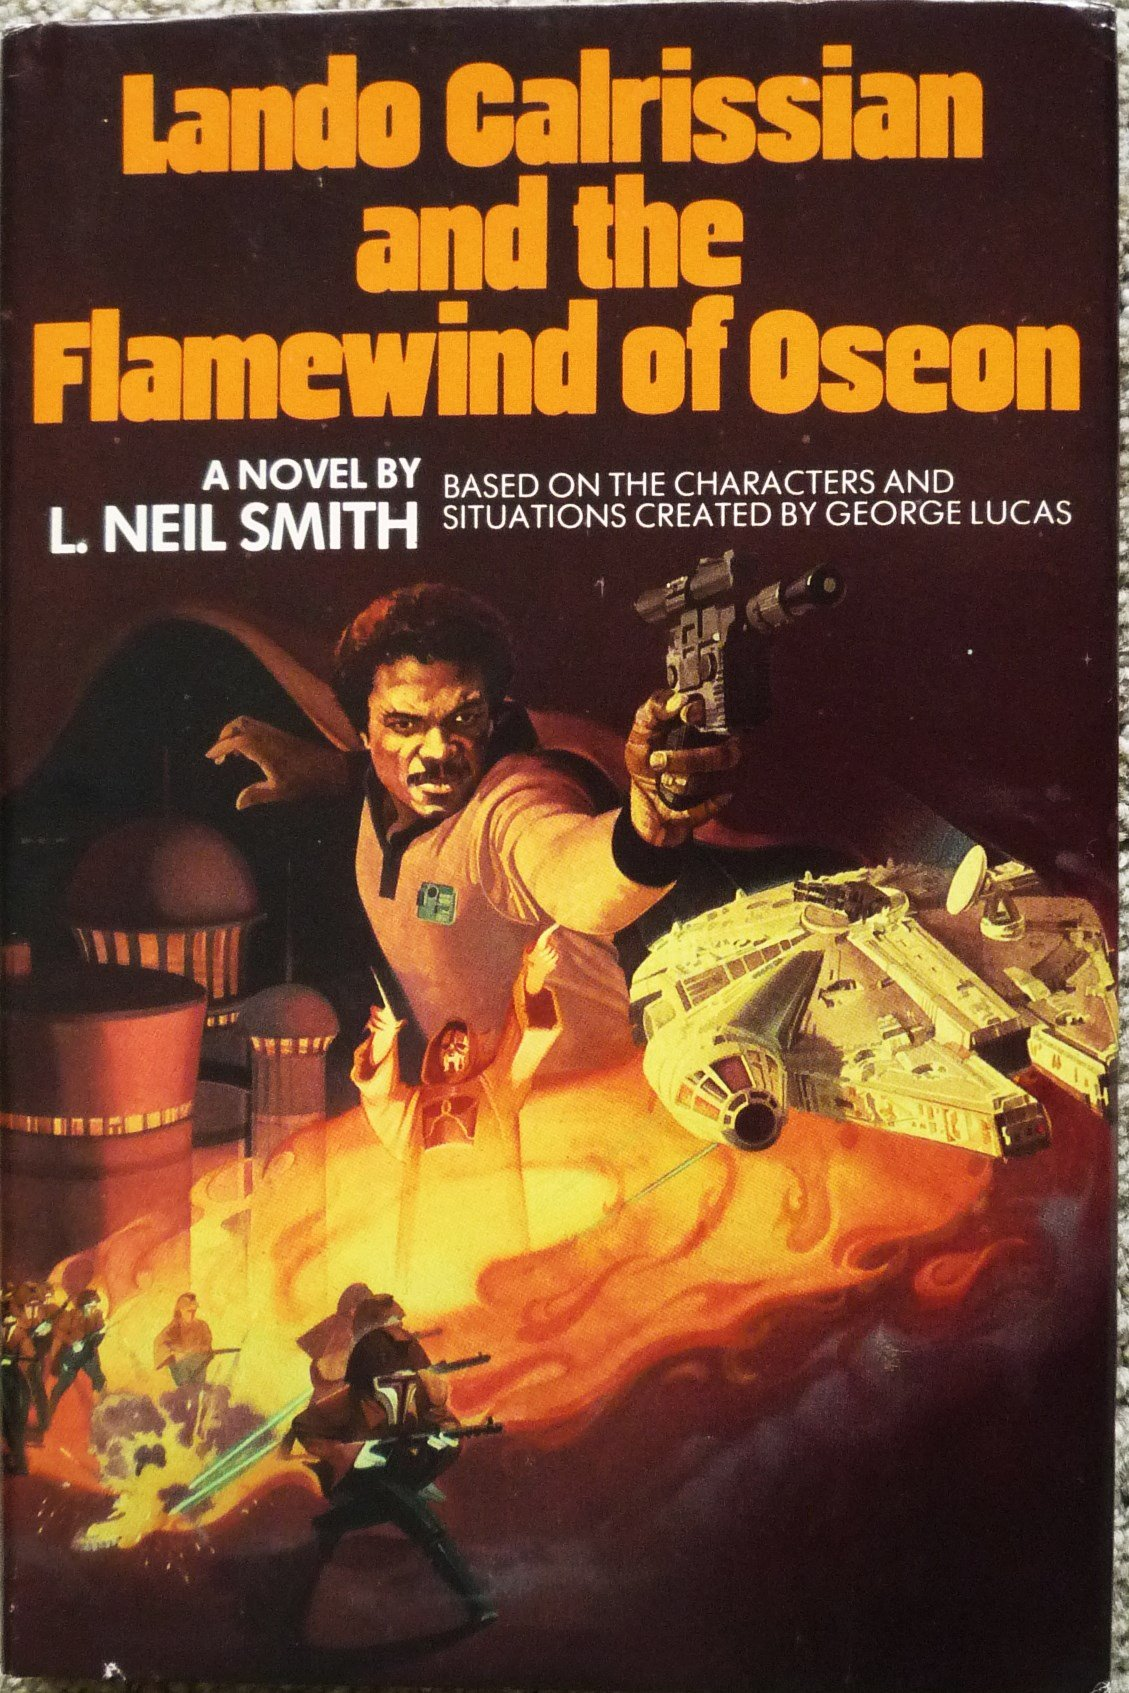 Lando Calrissian and the Flamewind of Oseon (Sci-Fi Book Club)